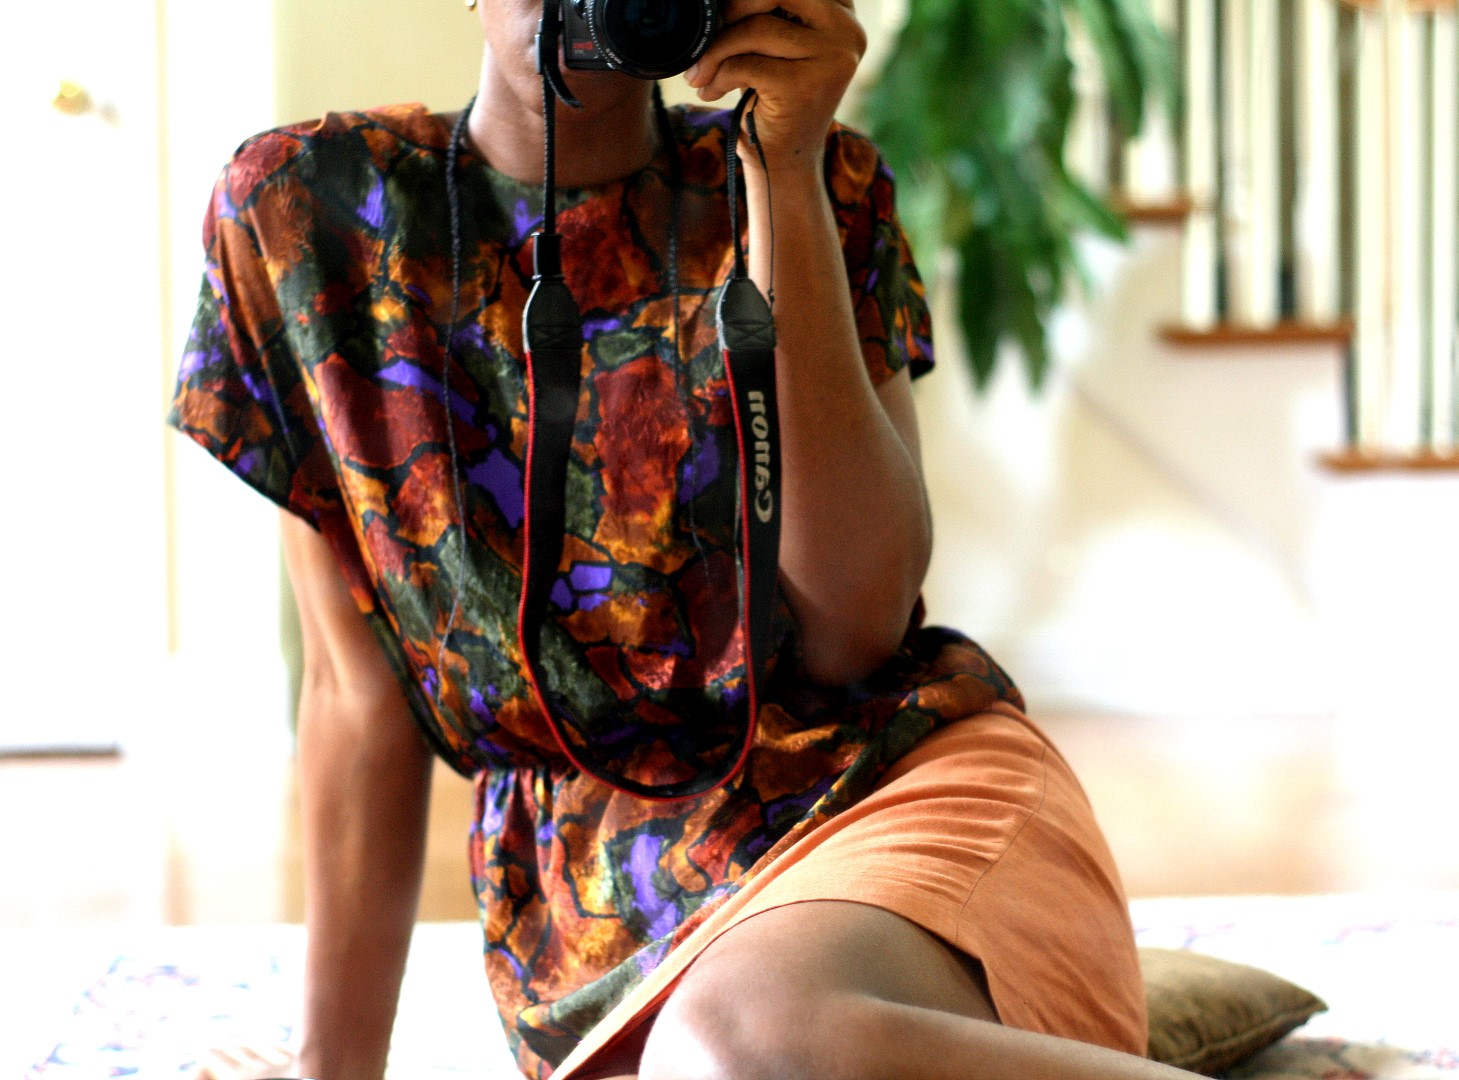 Going back to the basics - Nigerian fashion blogger Cassie Daves wearing a bright colored prints top